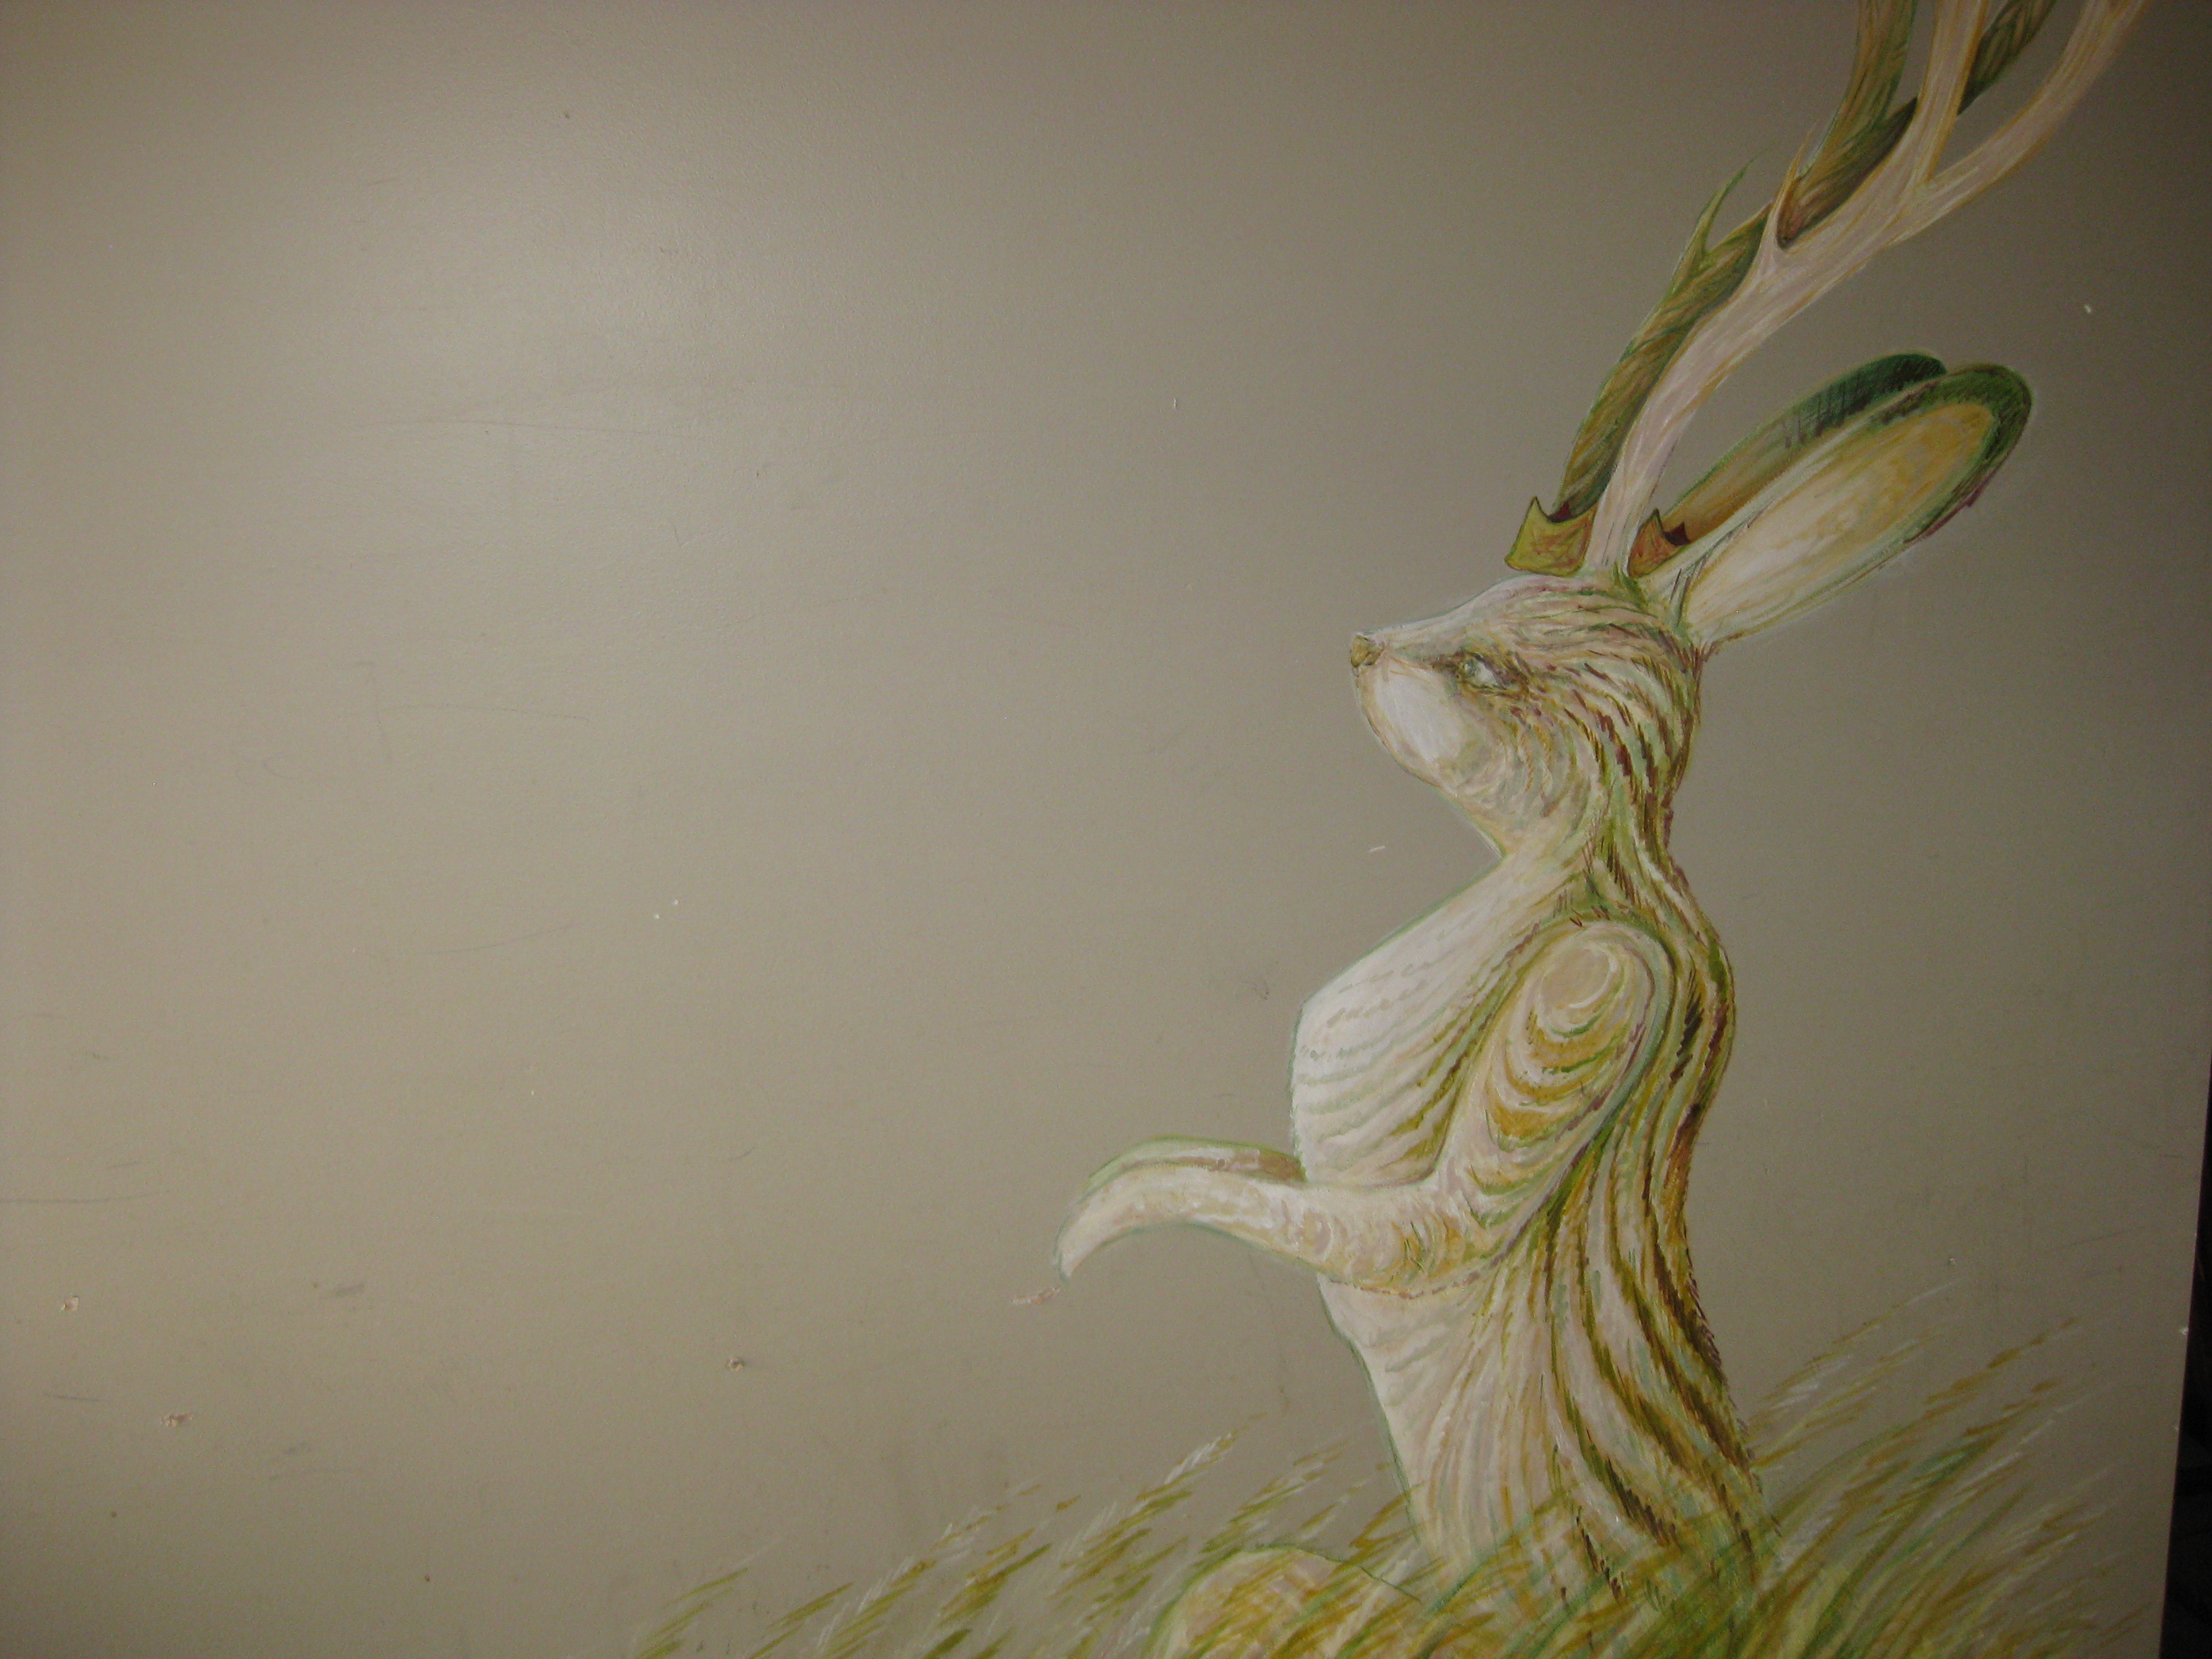 painting of a Jackalope